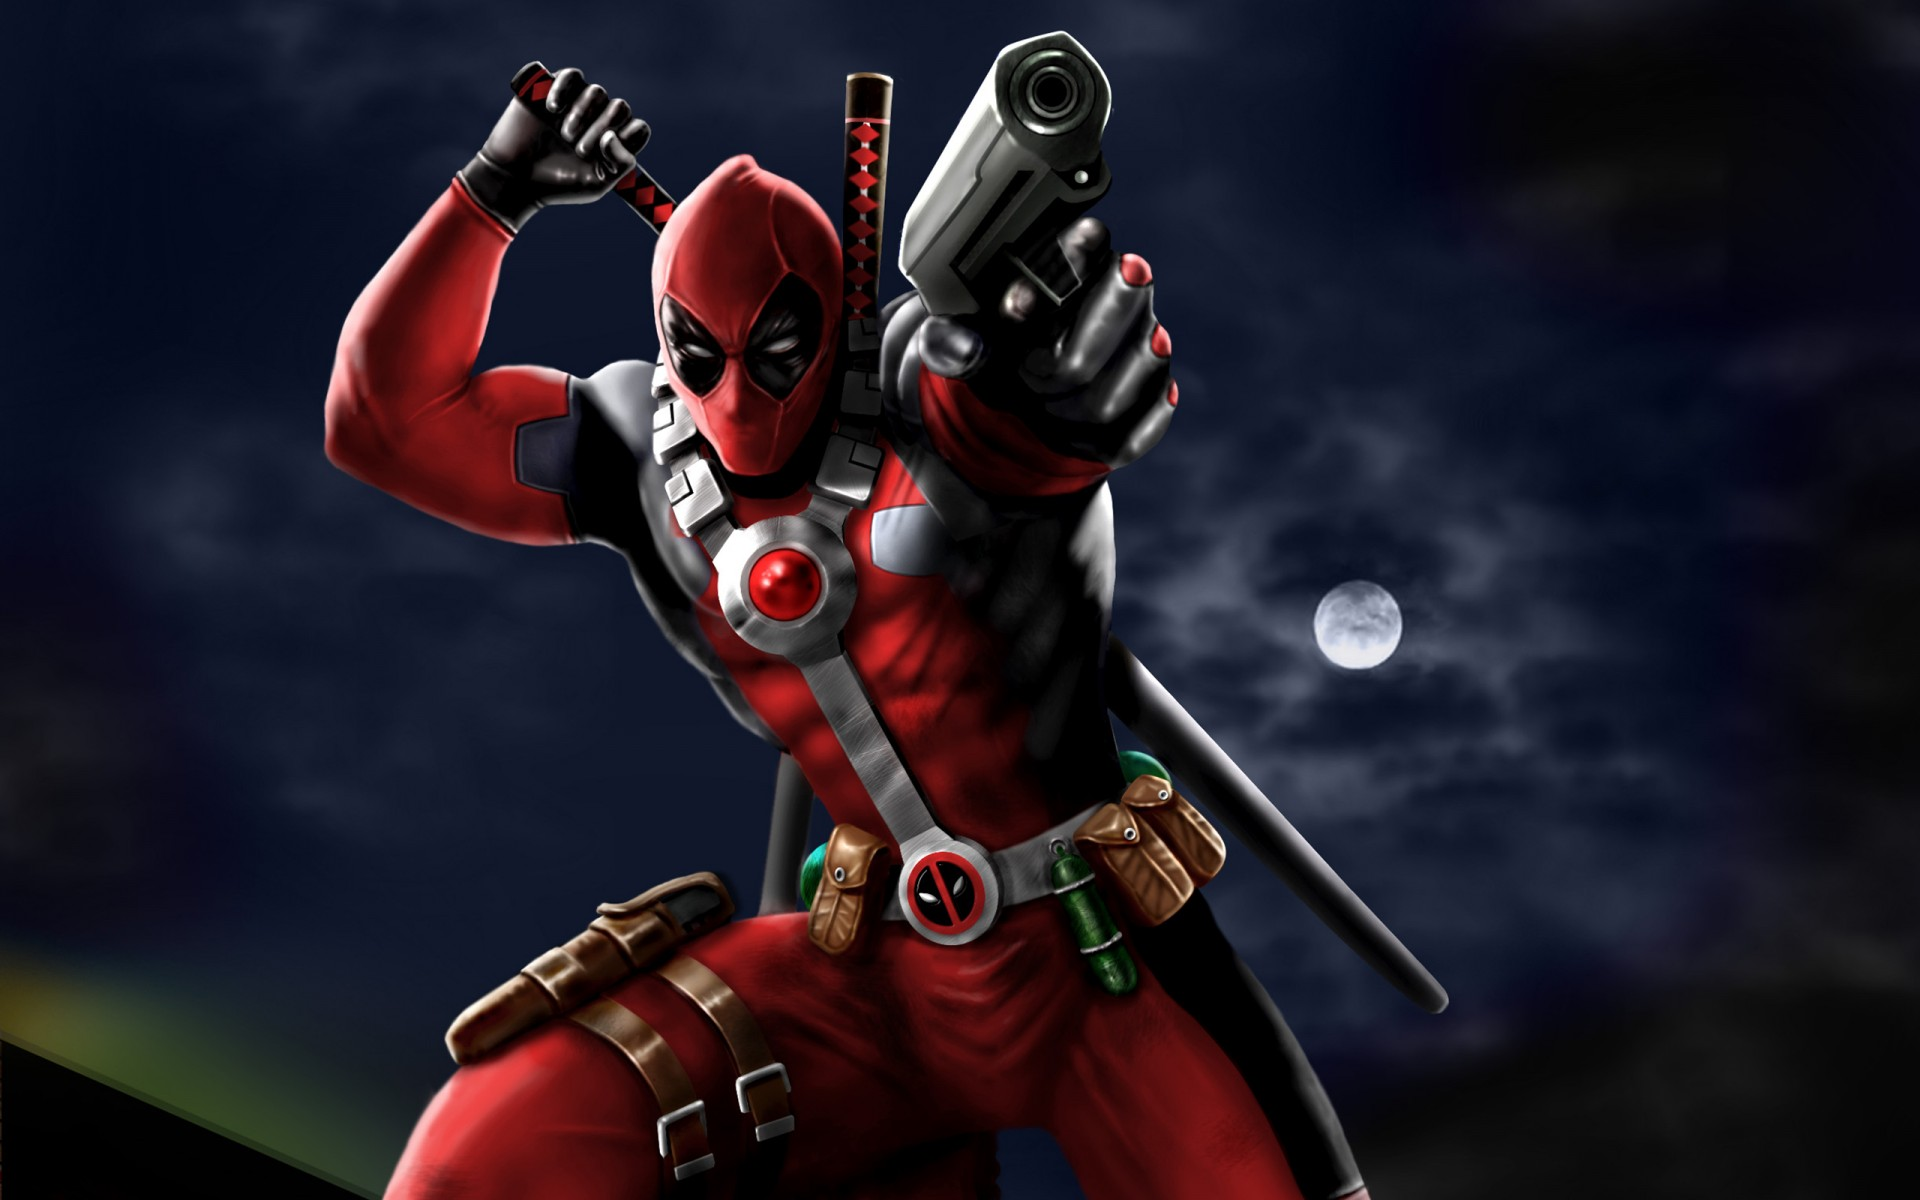 Deadpool Hd Wallpaper Iphone 6 Deadpool Speedpaint Wallpapers Hd Wallpapers Id 24119